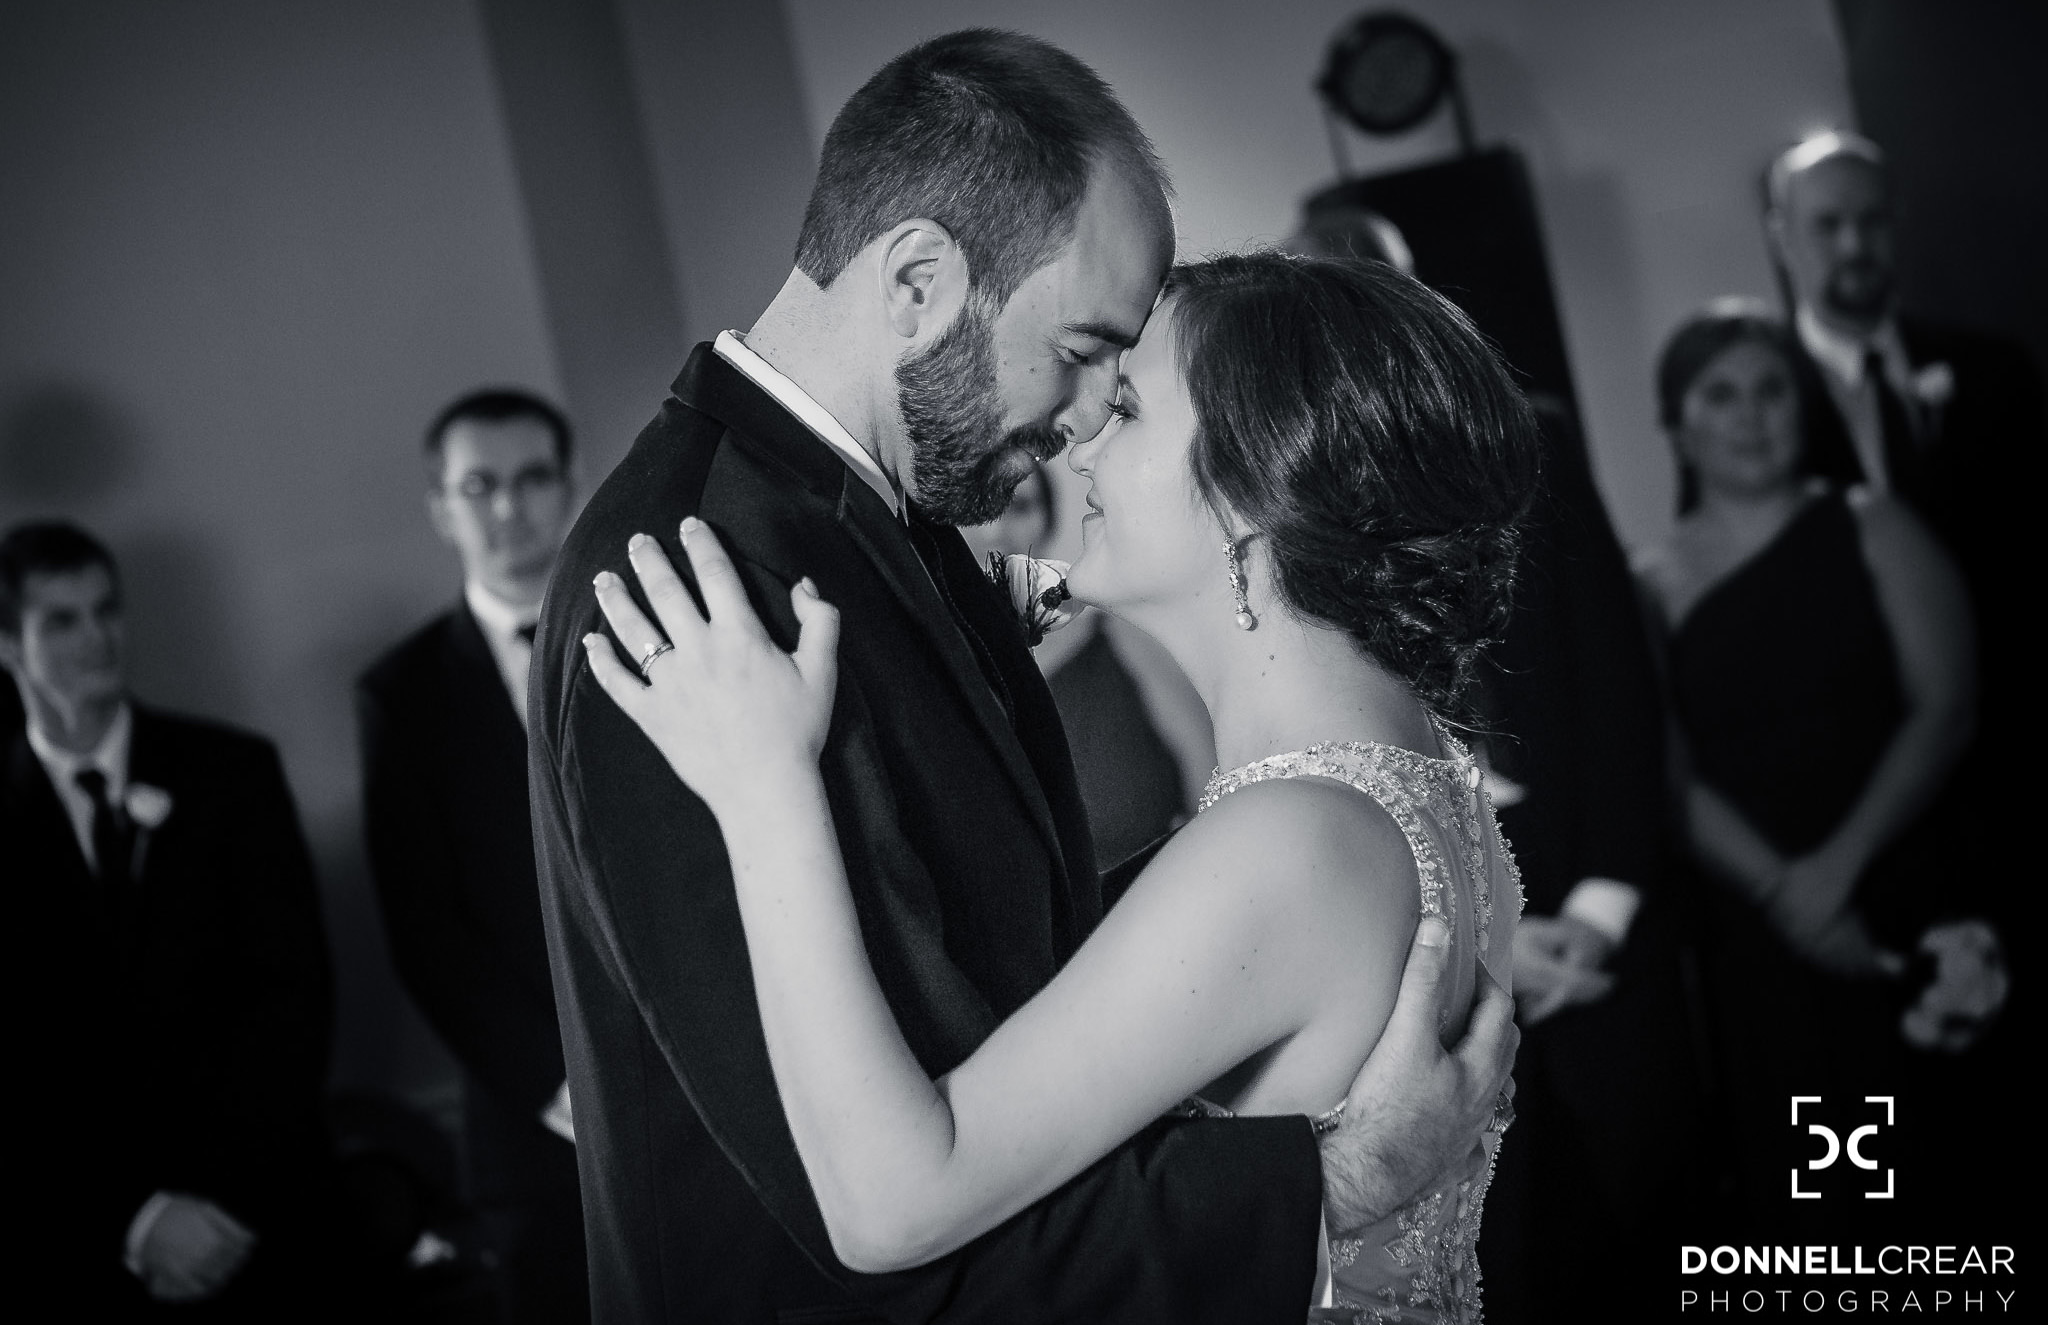 Couple sharing their first dance during their Commerce Club wedding